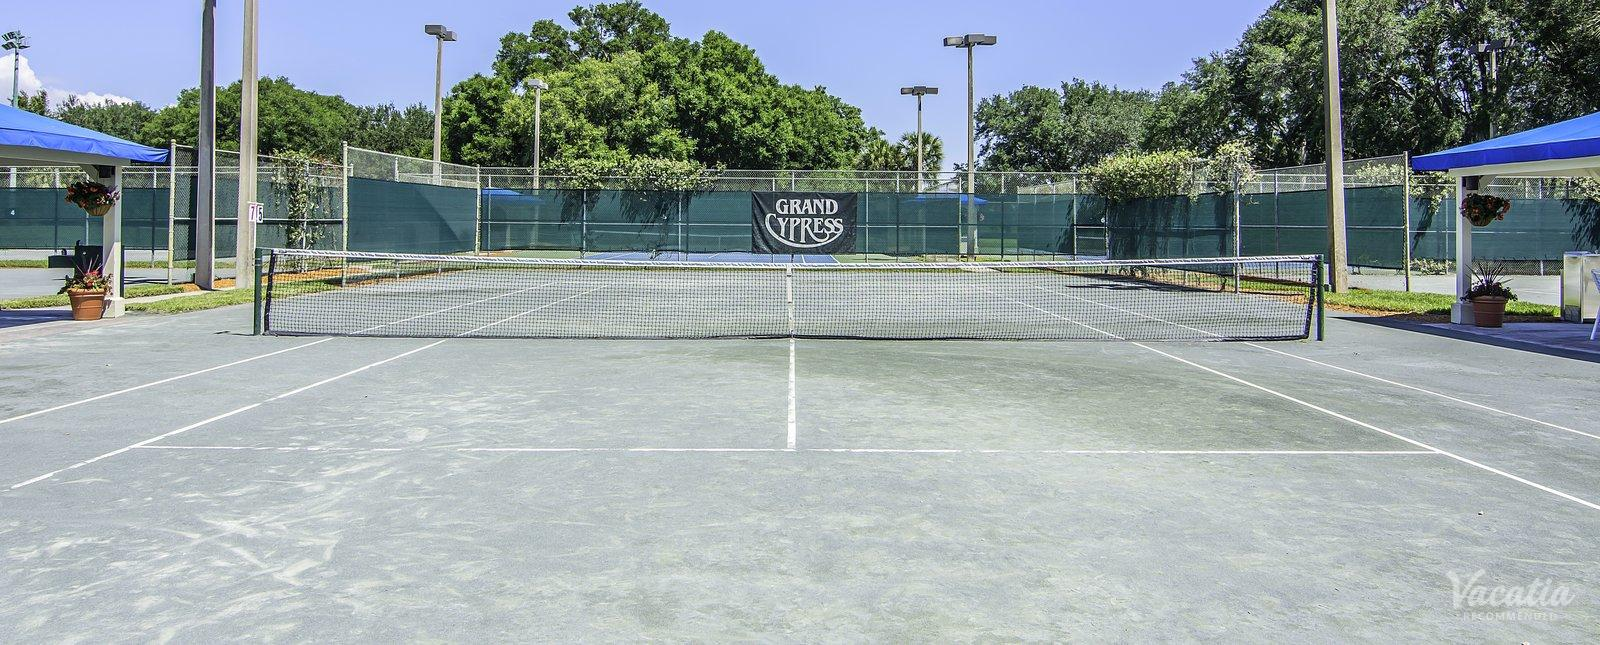 Villas of Grand Cypress resort tennis courts